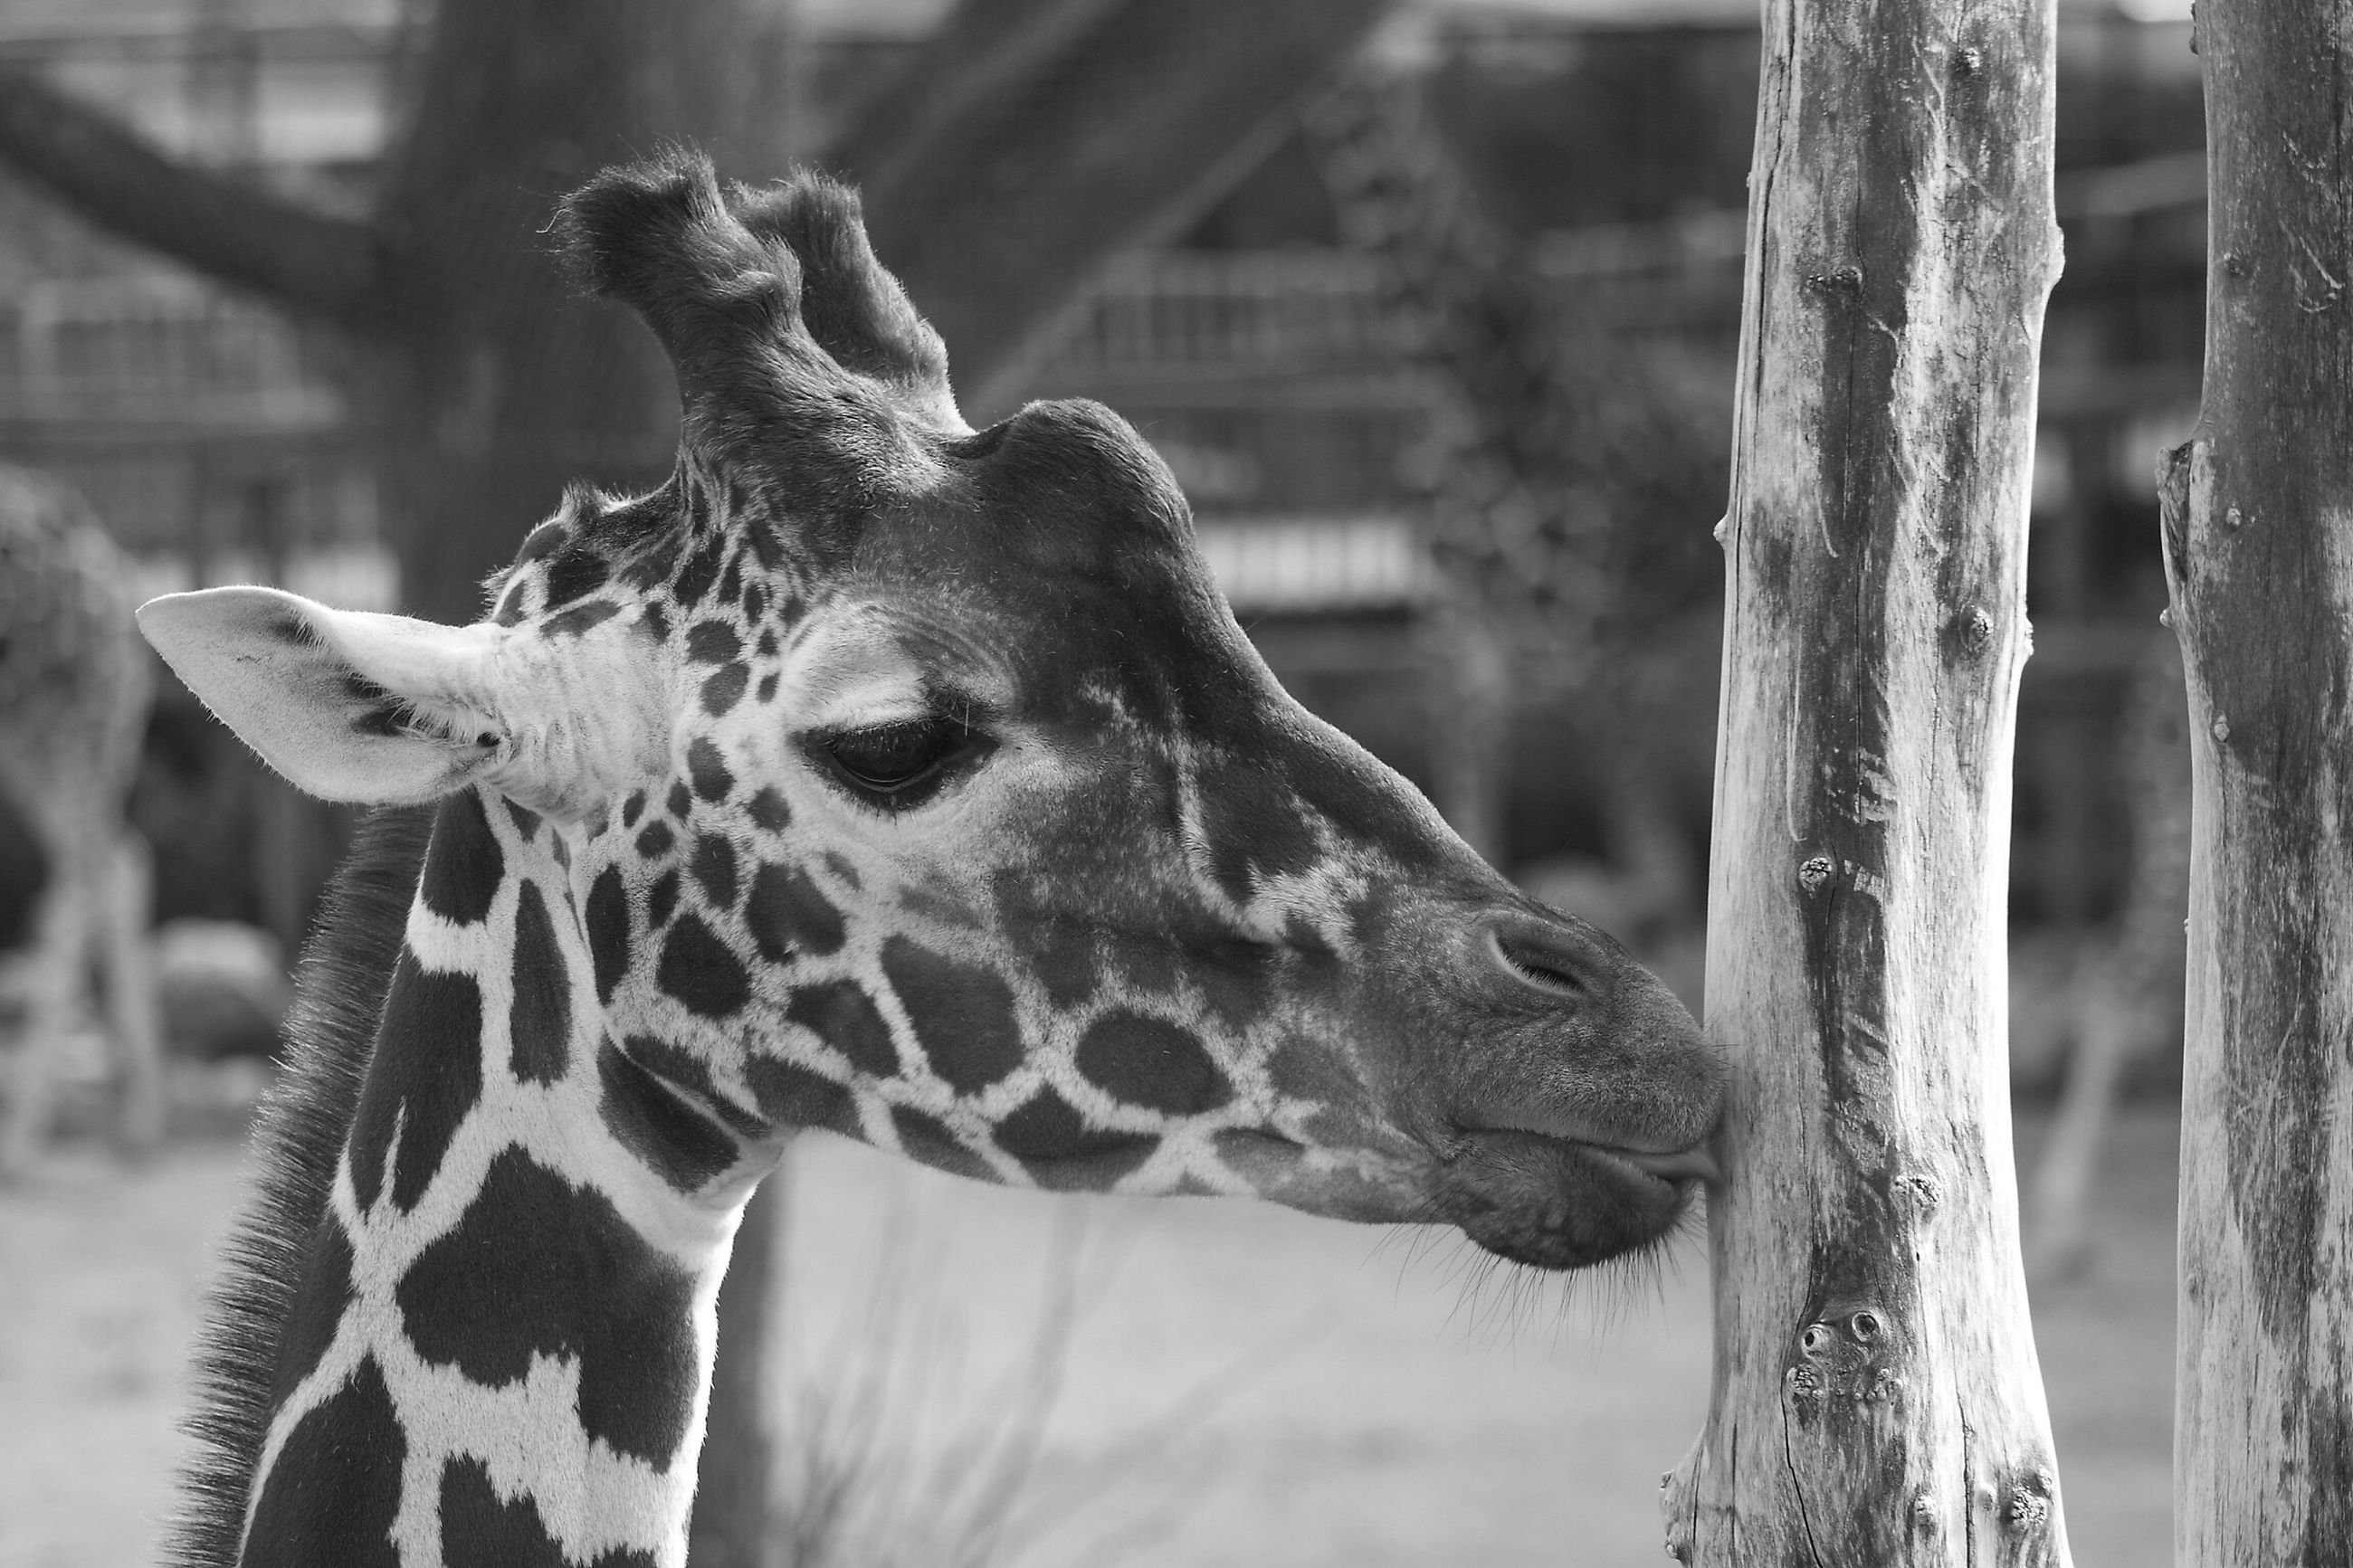 animal themes, one animal, mammal, focus on foreground, giraffe, animal head, animal wildlife, animals in the wild, no people, close-up, day, outdoors, nature, portrait